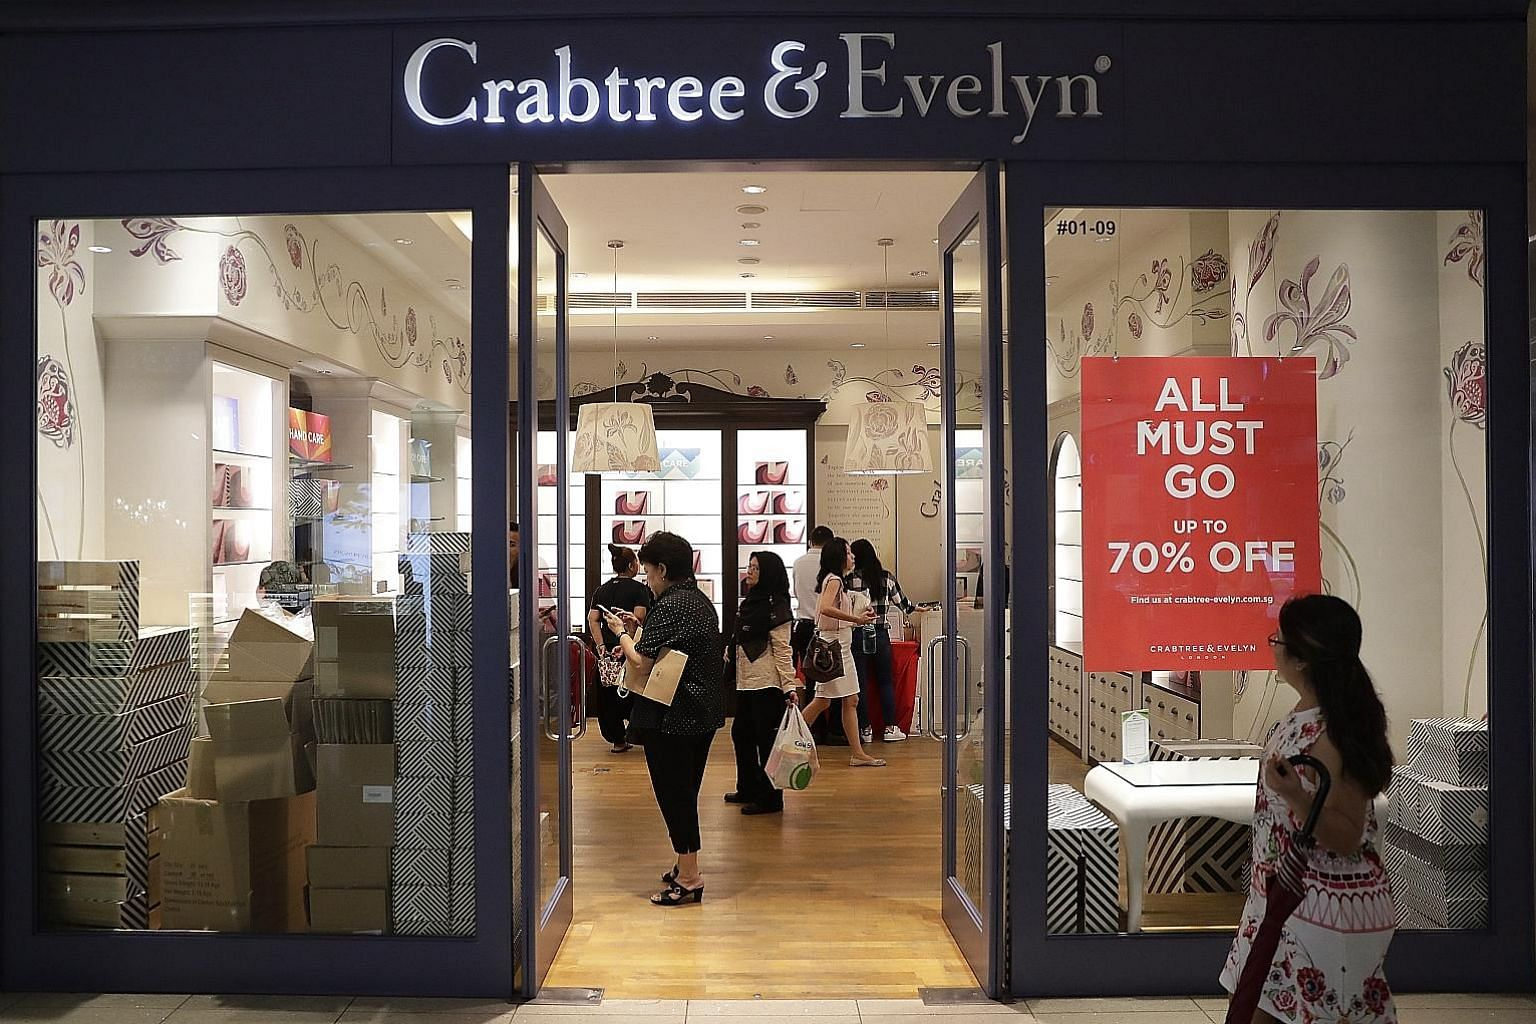 Although retailers such as Crabtree & Evelyn are closing physical stores and rents are scraping the bottom, companies are forecast to add a further 364,000 sq m of retail space in Singapore.